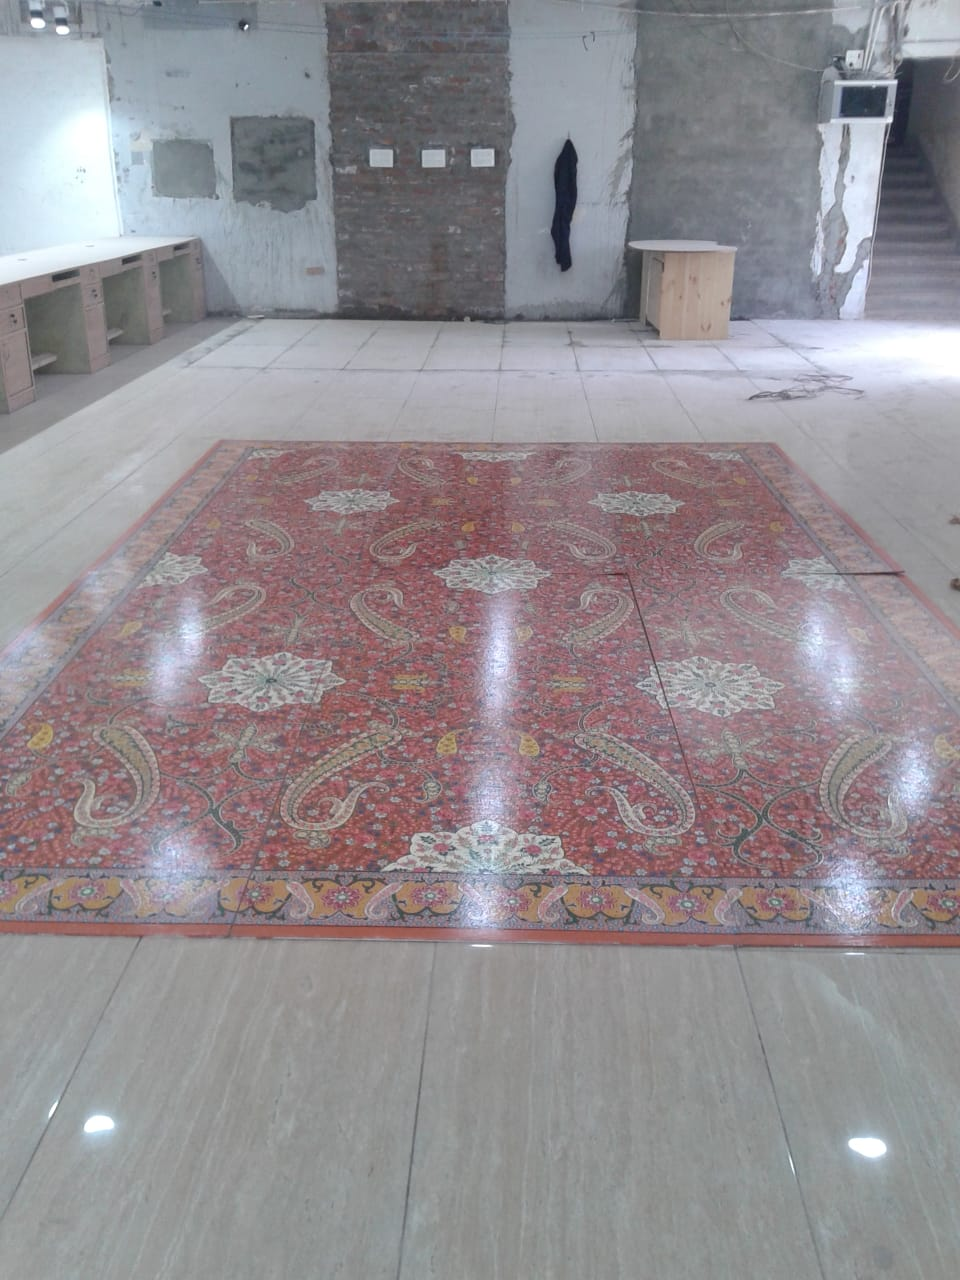 Floor-almond-pattern, Floor handmade paintings